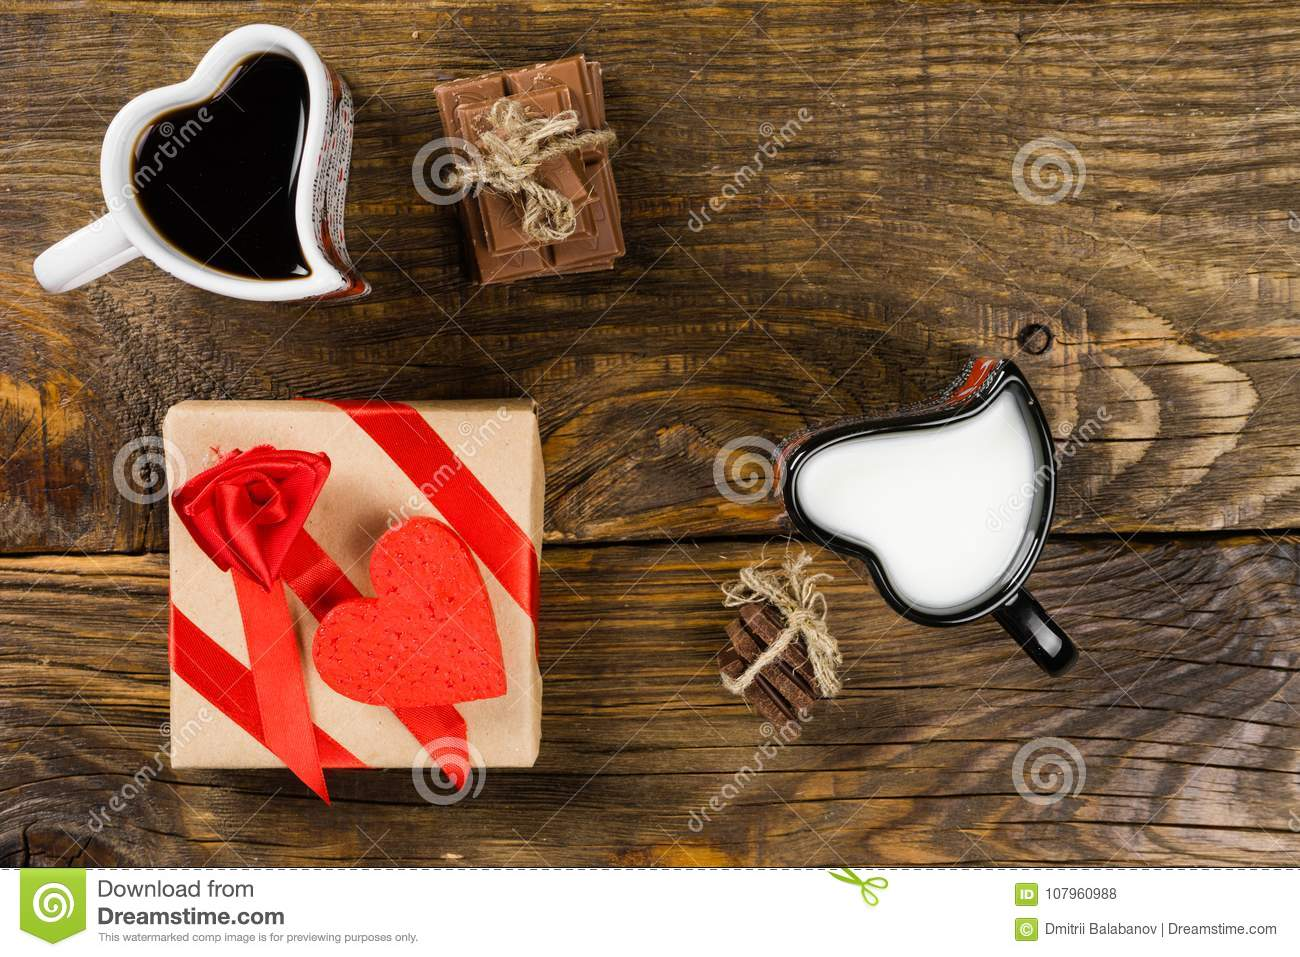 Cup in the shape of hearts, one poured coffee in the other milk, next the chopped chocolate twine tied around the decorative heart